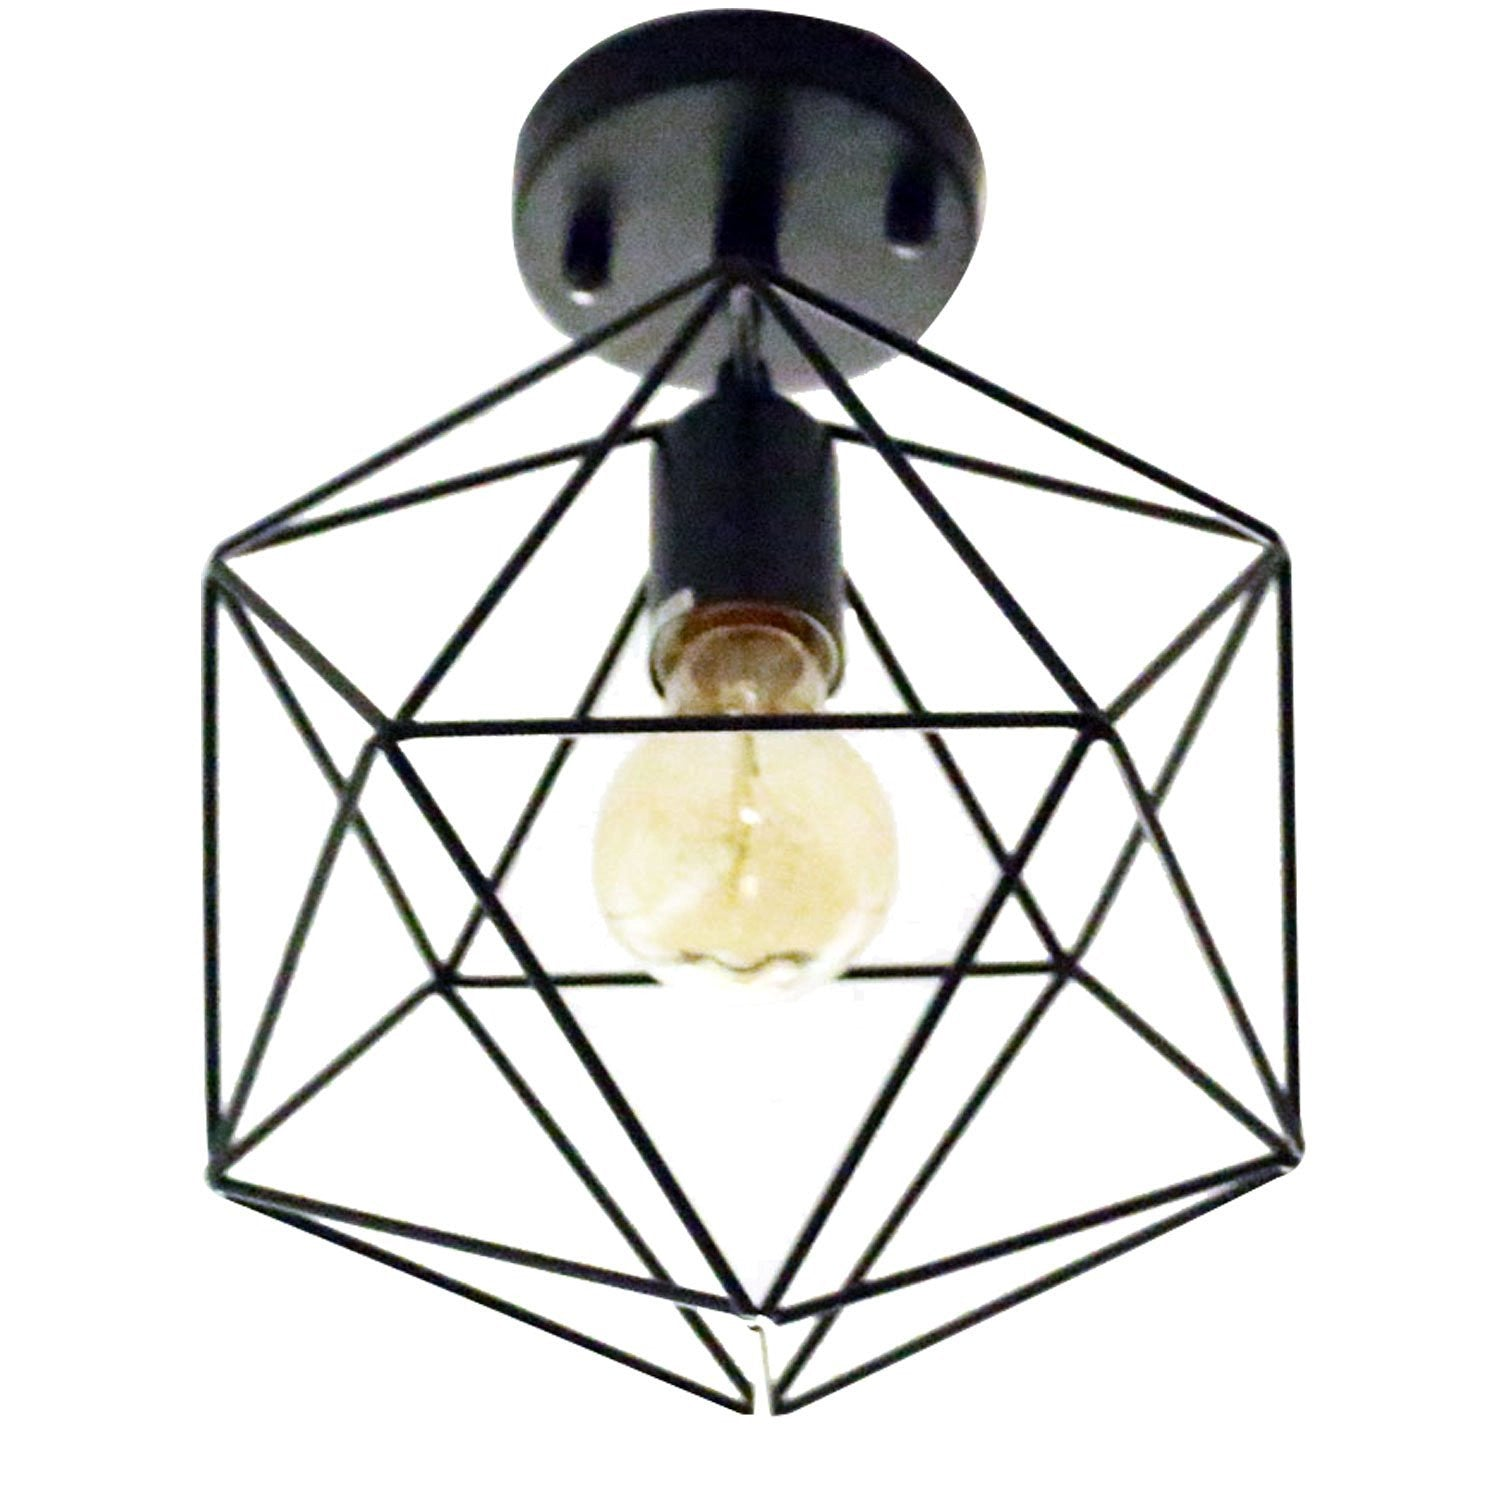 Unitary brand antique black metal cage shade semi flush mount unitary brand antique black metal cage shade semi flush mount ceiling light with 1 e26 bulb socket 40w painted finish aloadofball Images